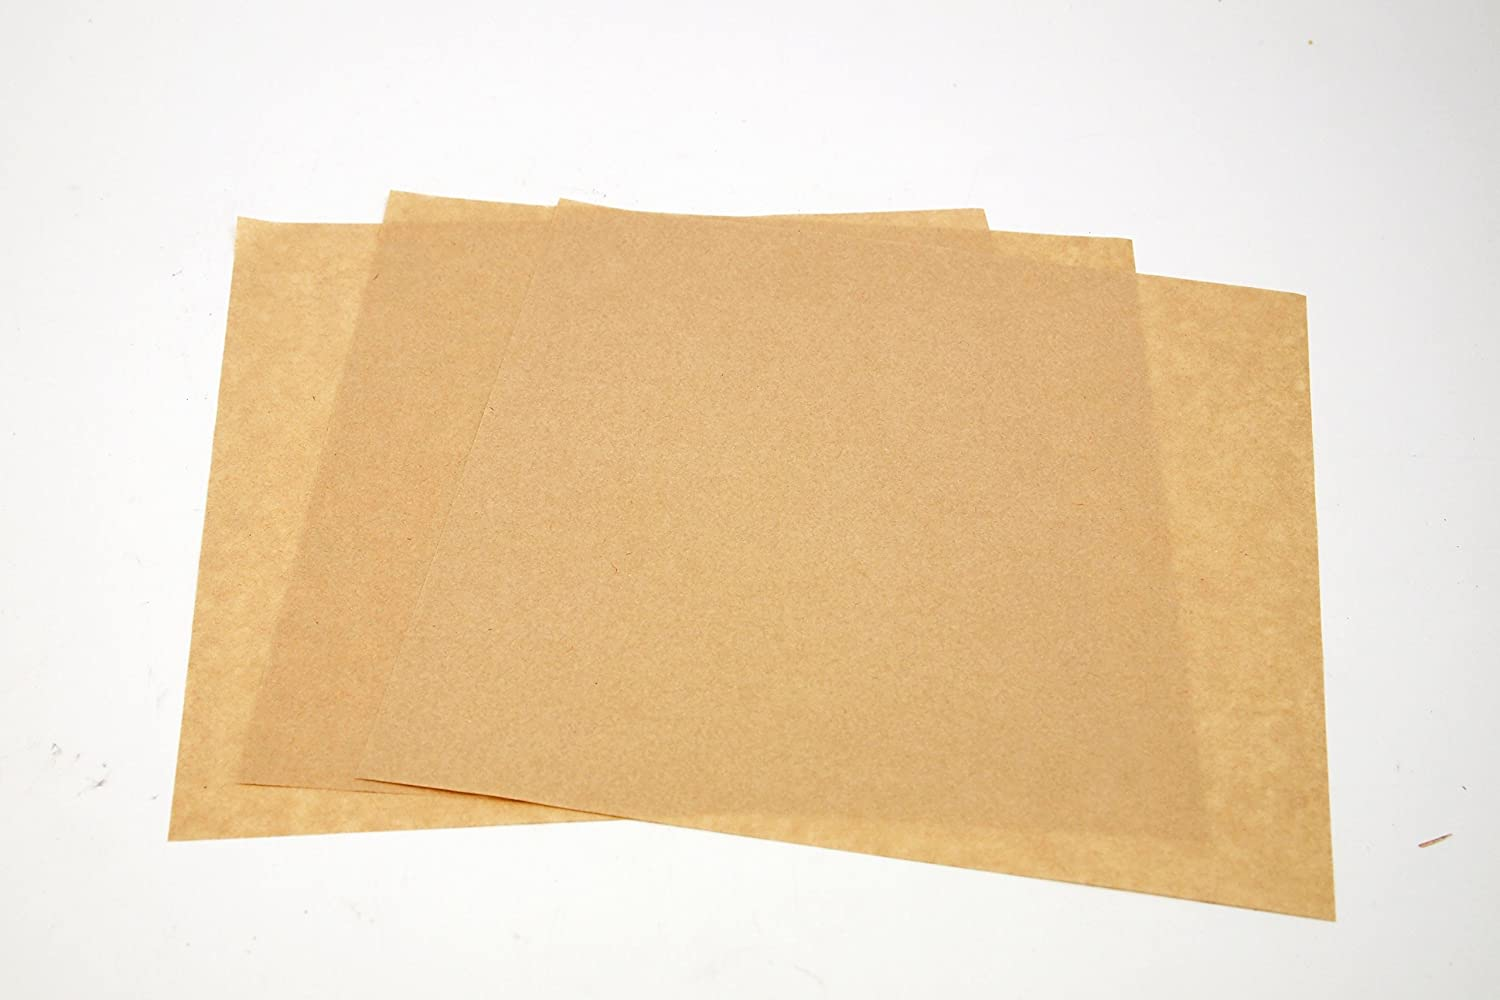 Fry Baskets/Cones/Tray/Food Container Liners,Restaurant Disposable Parchment Oiled Papers 20x20cm (500 Pcs/Pack) F0120